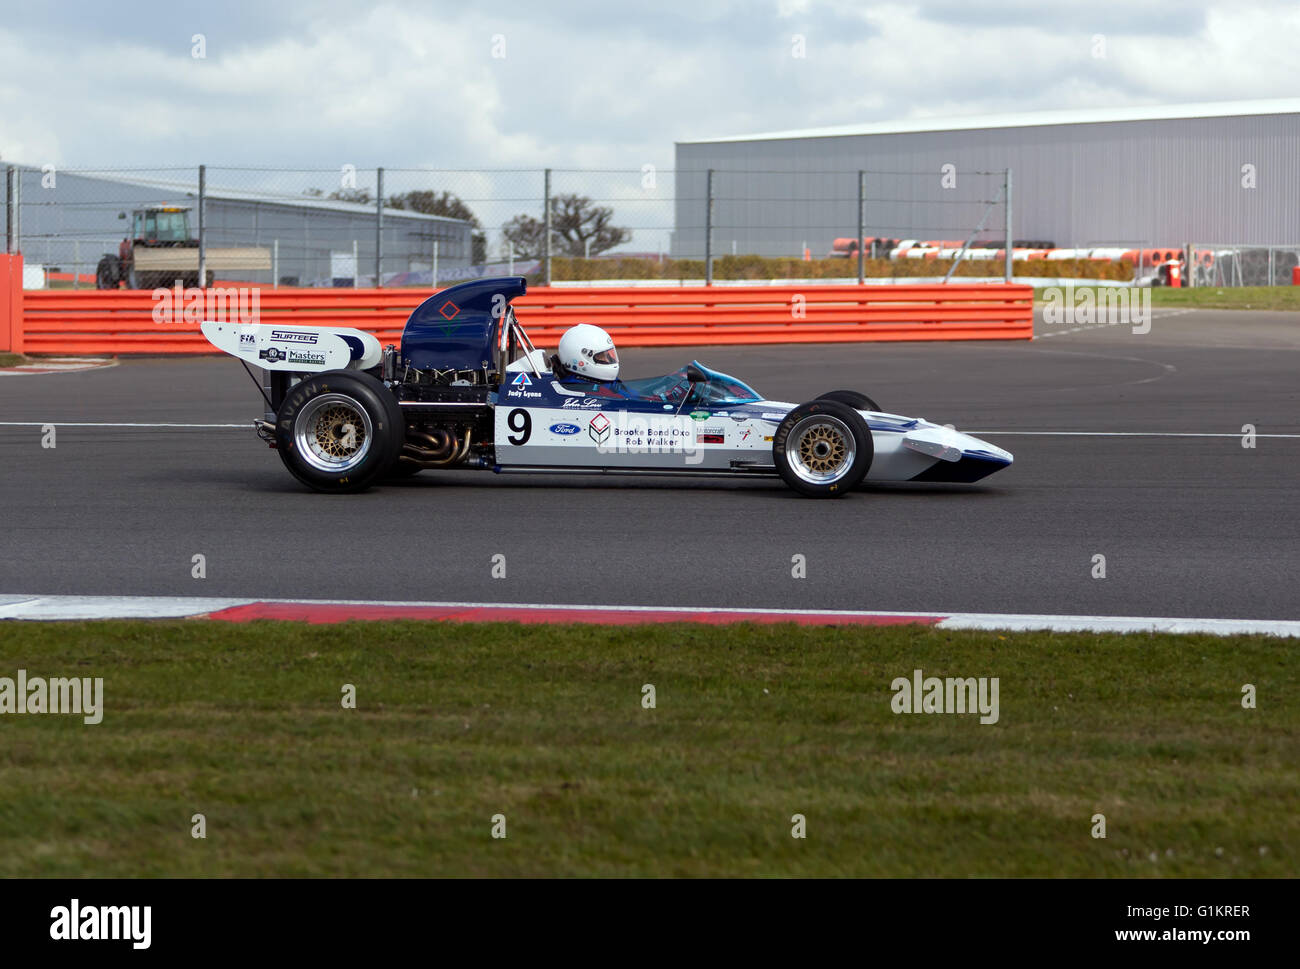 Judy Lyons driving a Surtees TS9 formula one racing car, during  the Silverstone Classic Media Test Day 2016. - Stock Image